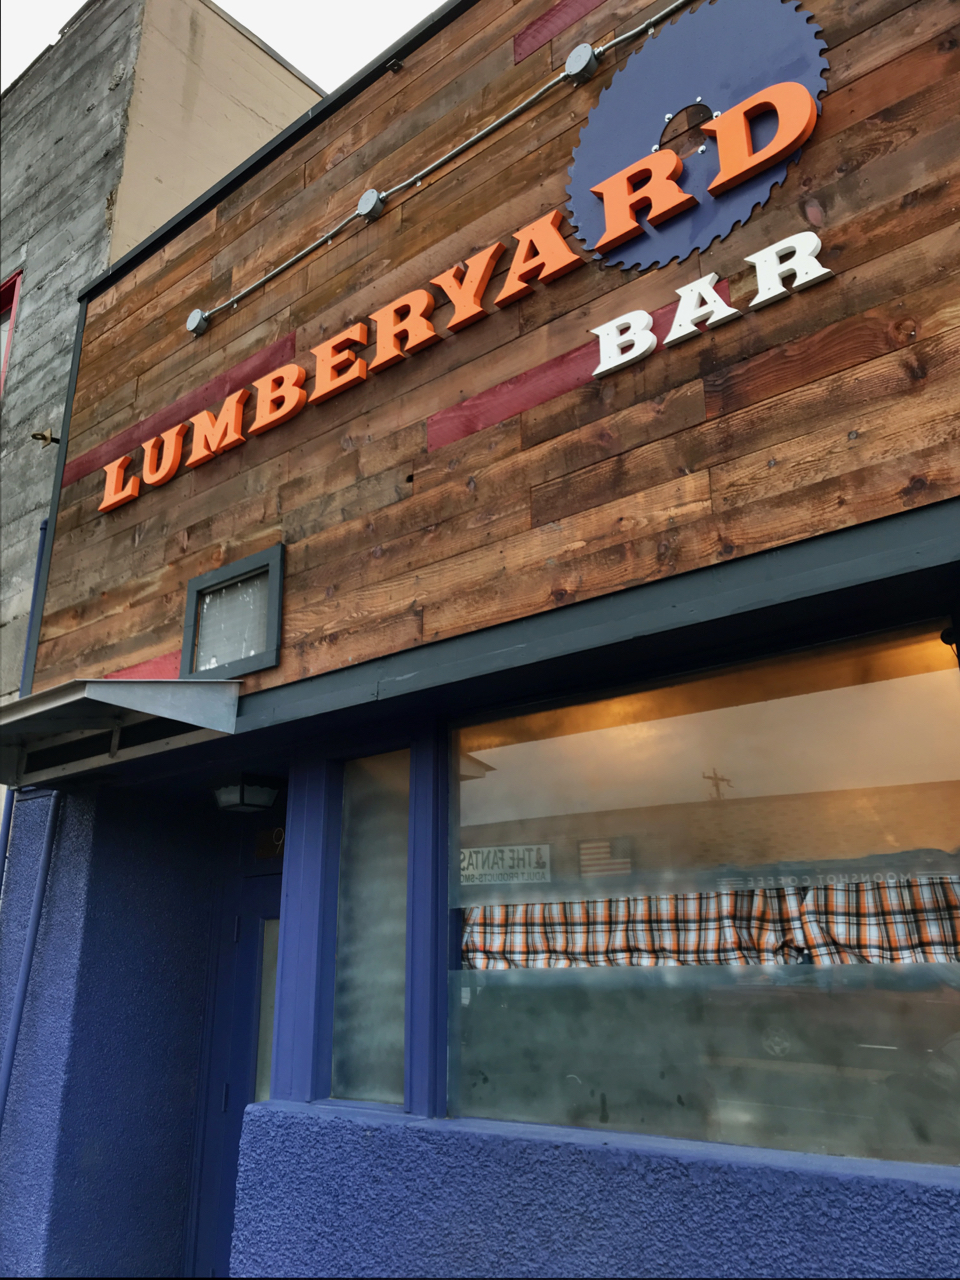 Outside signage for the Lumberyard Bar in White Center.